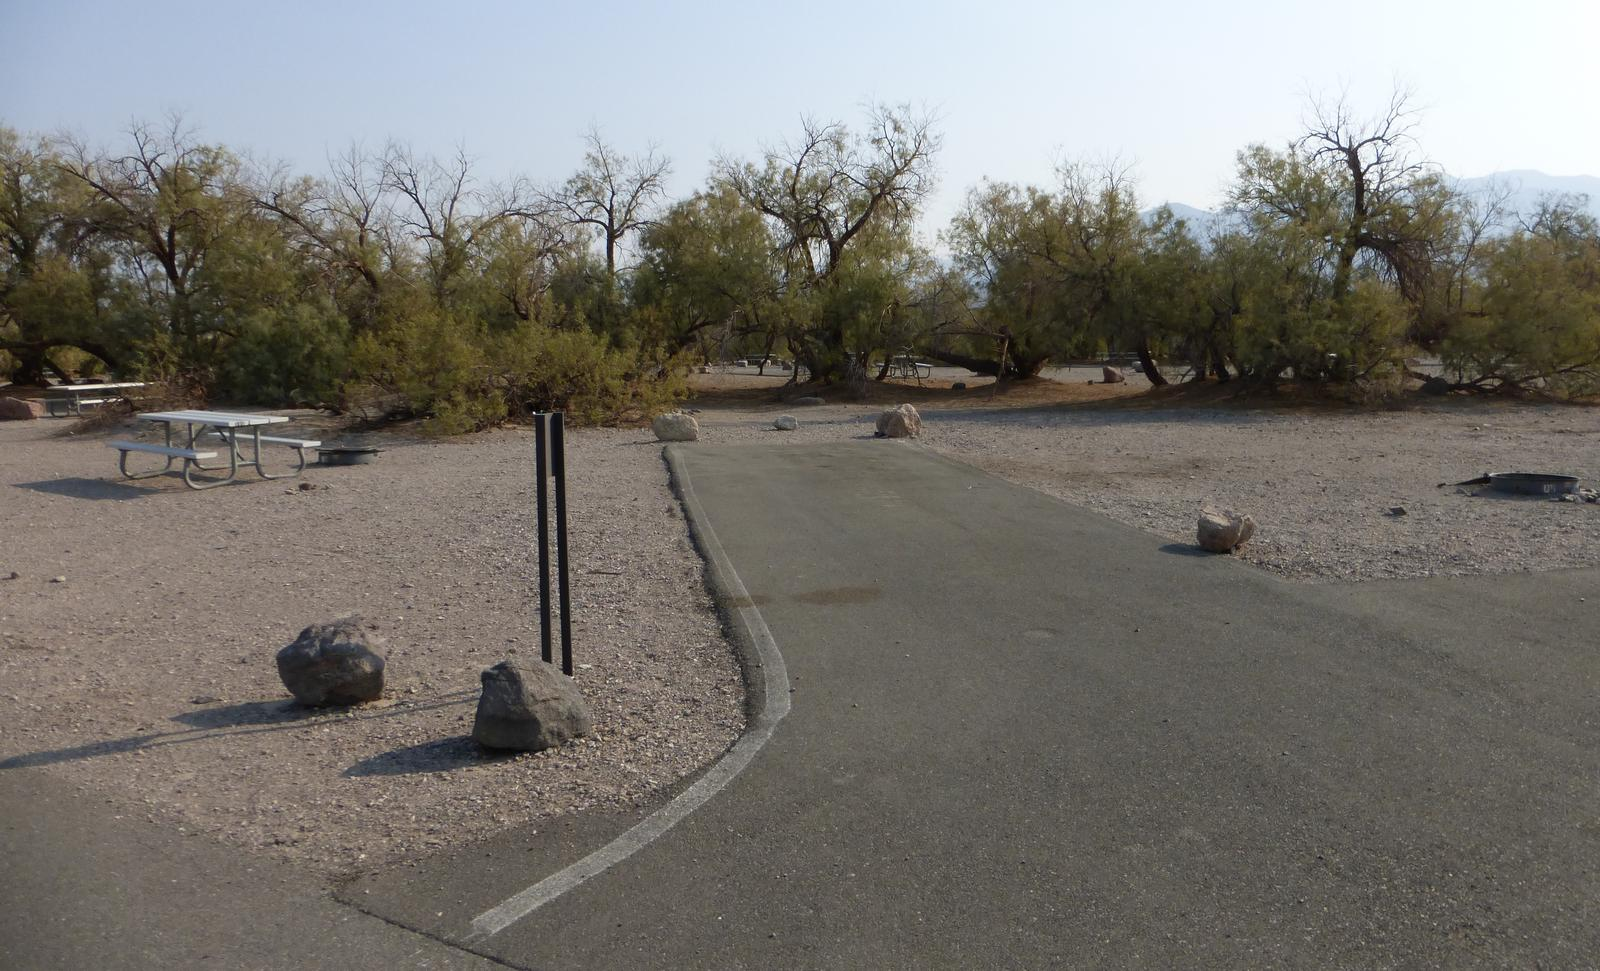 Furnace Creek Campground standard nonelectric site #80 with picnic table and fire ring.